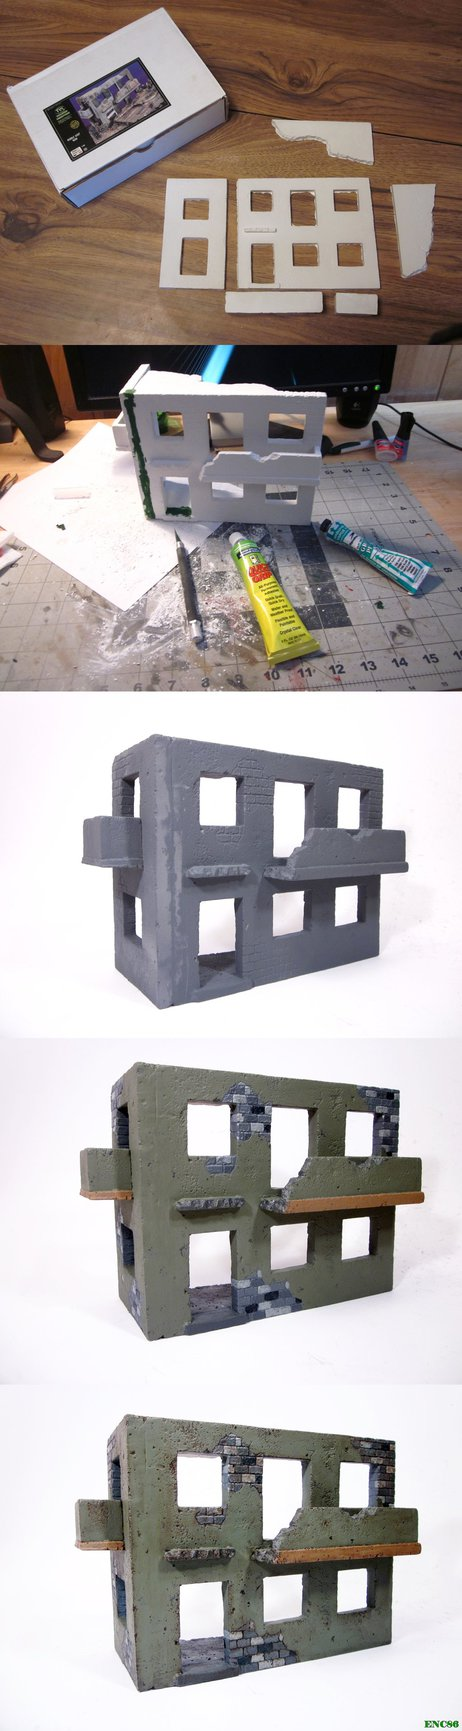 "Here is a couple days worth of work on a 1/35 ruined building for an upcoming diorama. The building is from ""Verlinden"" and made out of plaster. While the kit is nice it does have a few draw backs ..."